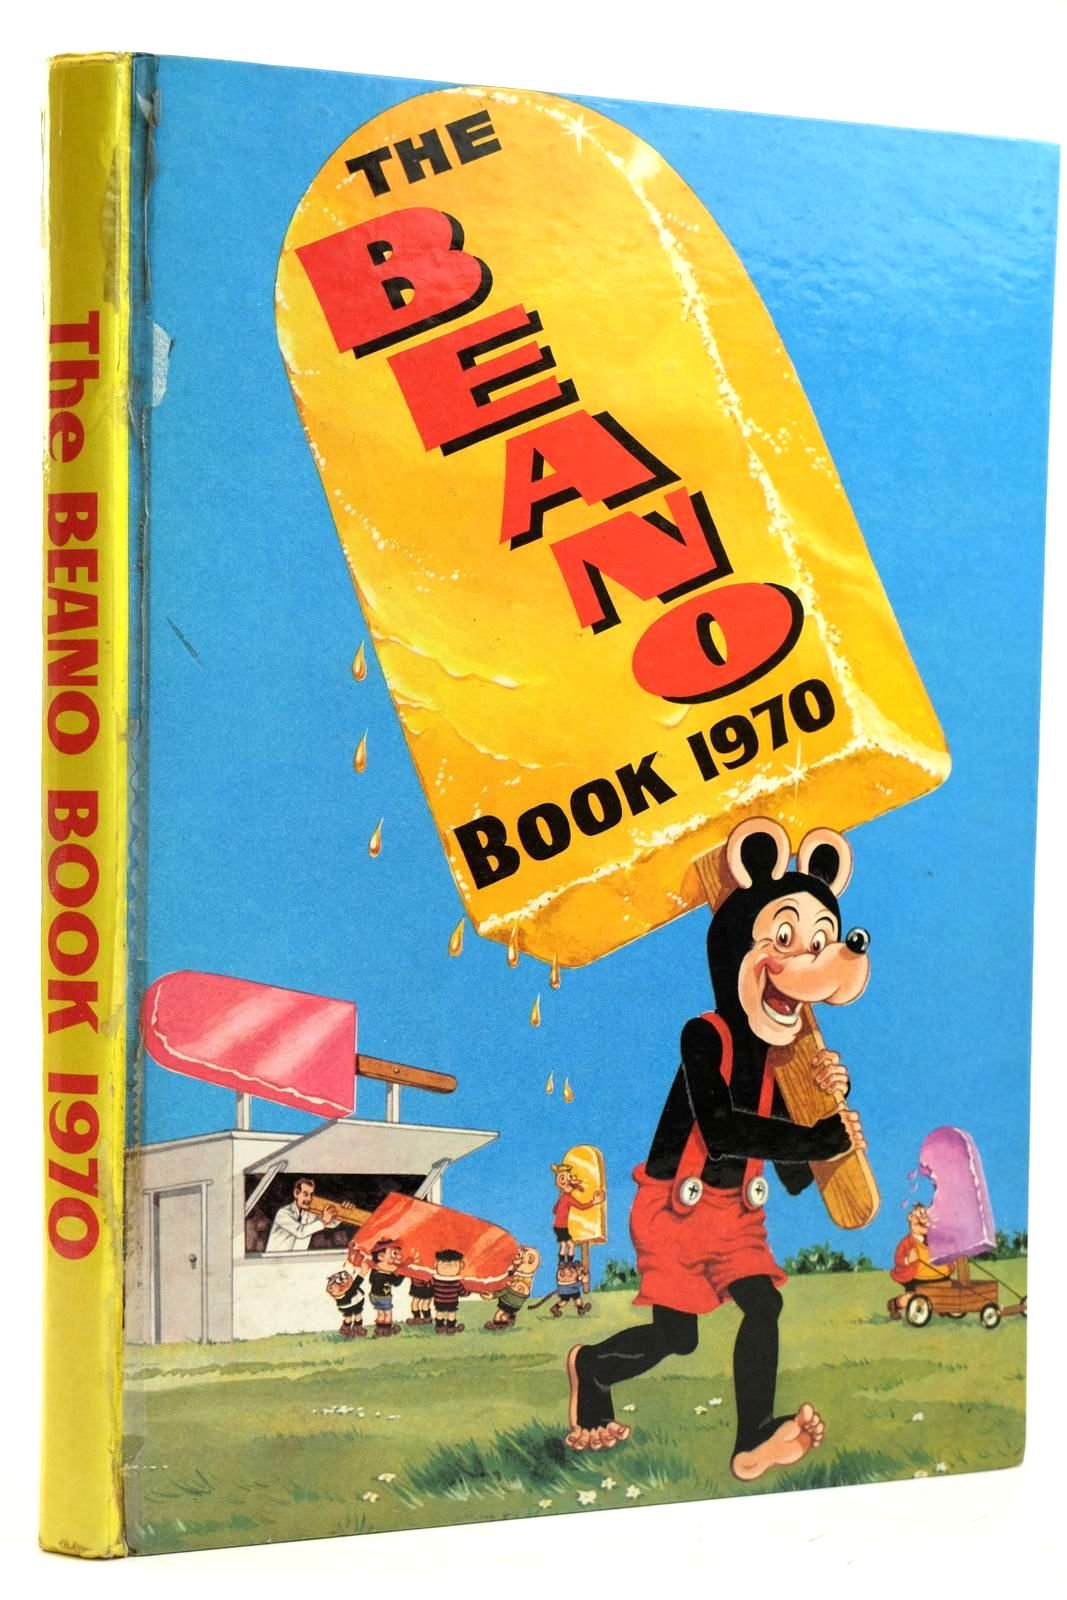 Photo of THE BEANO BOOK 1970 published by D.C. Thomson & Co Ltd. (STOCK CODE: 2131963)  for sale by Stella & Rose's Books